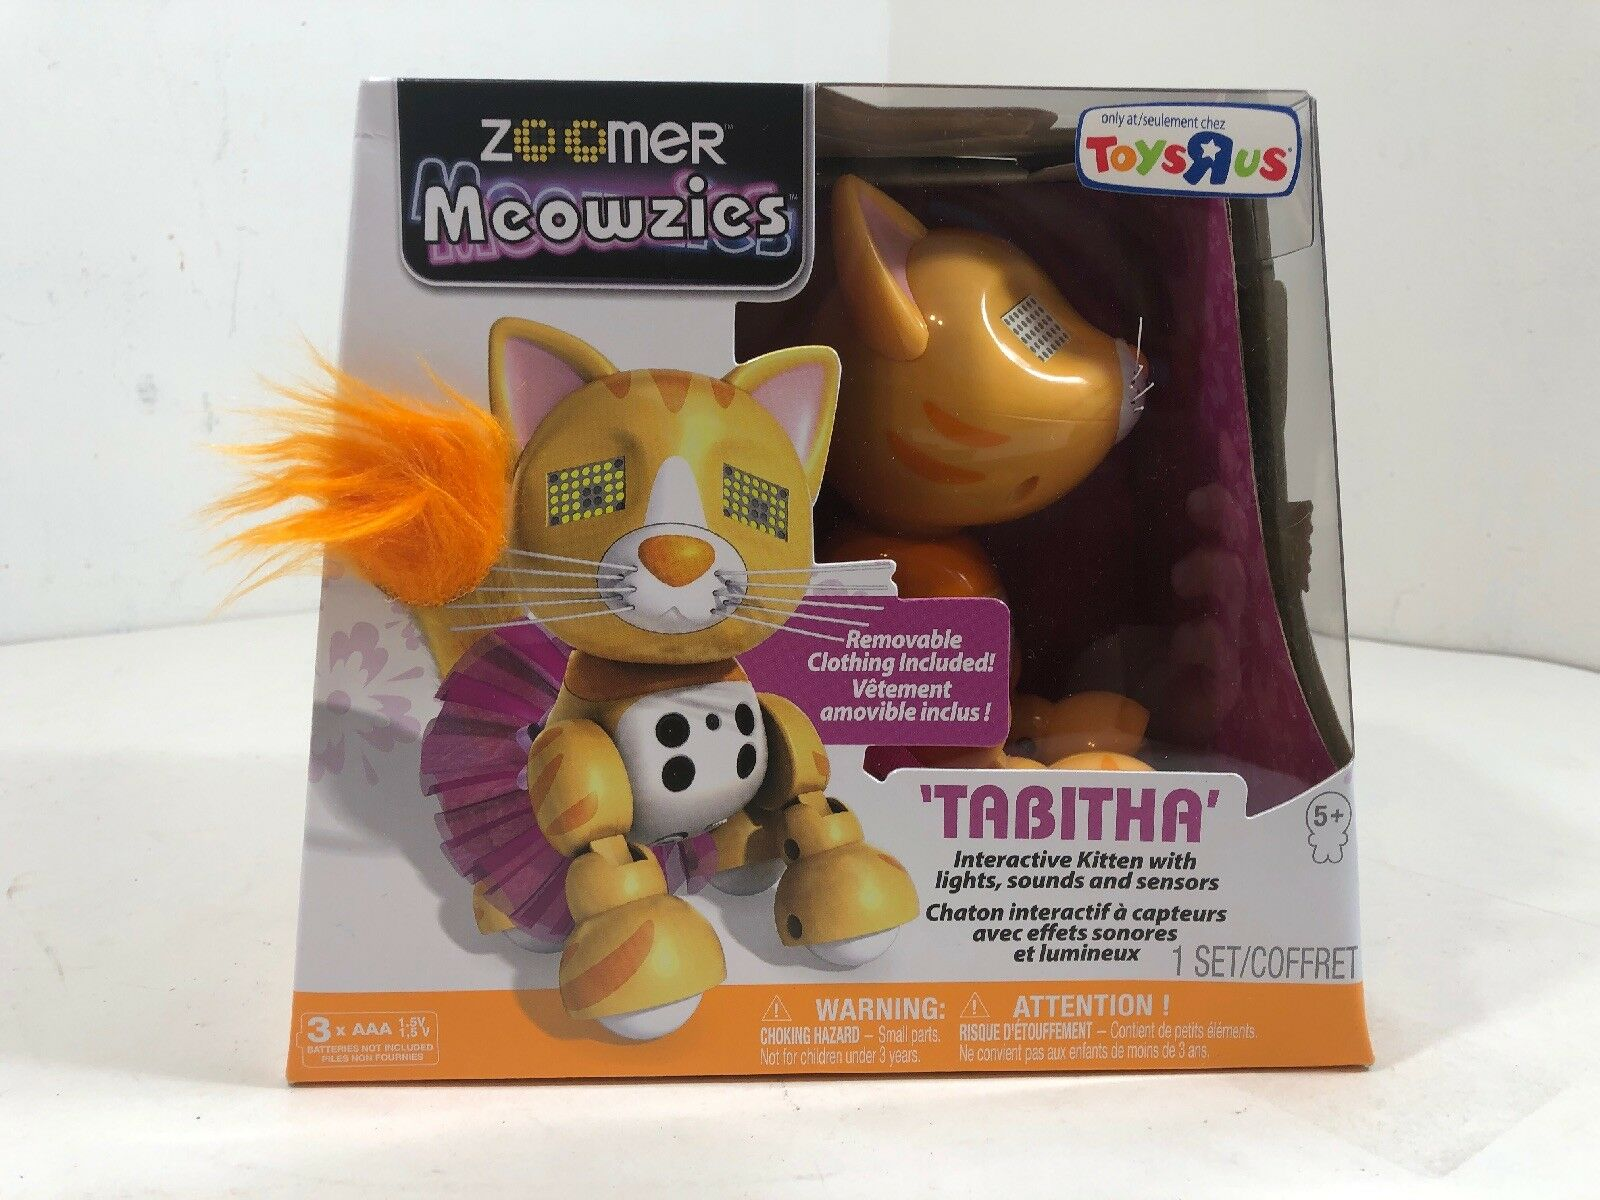 Meowzies Tabitha orange Tabby Cat Kitty Zoomer Interactive Pet Toy - Toys R Us